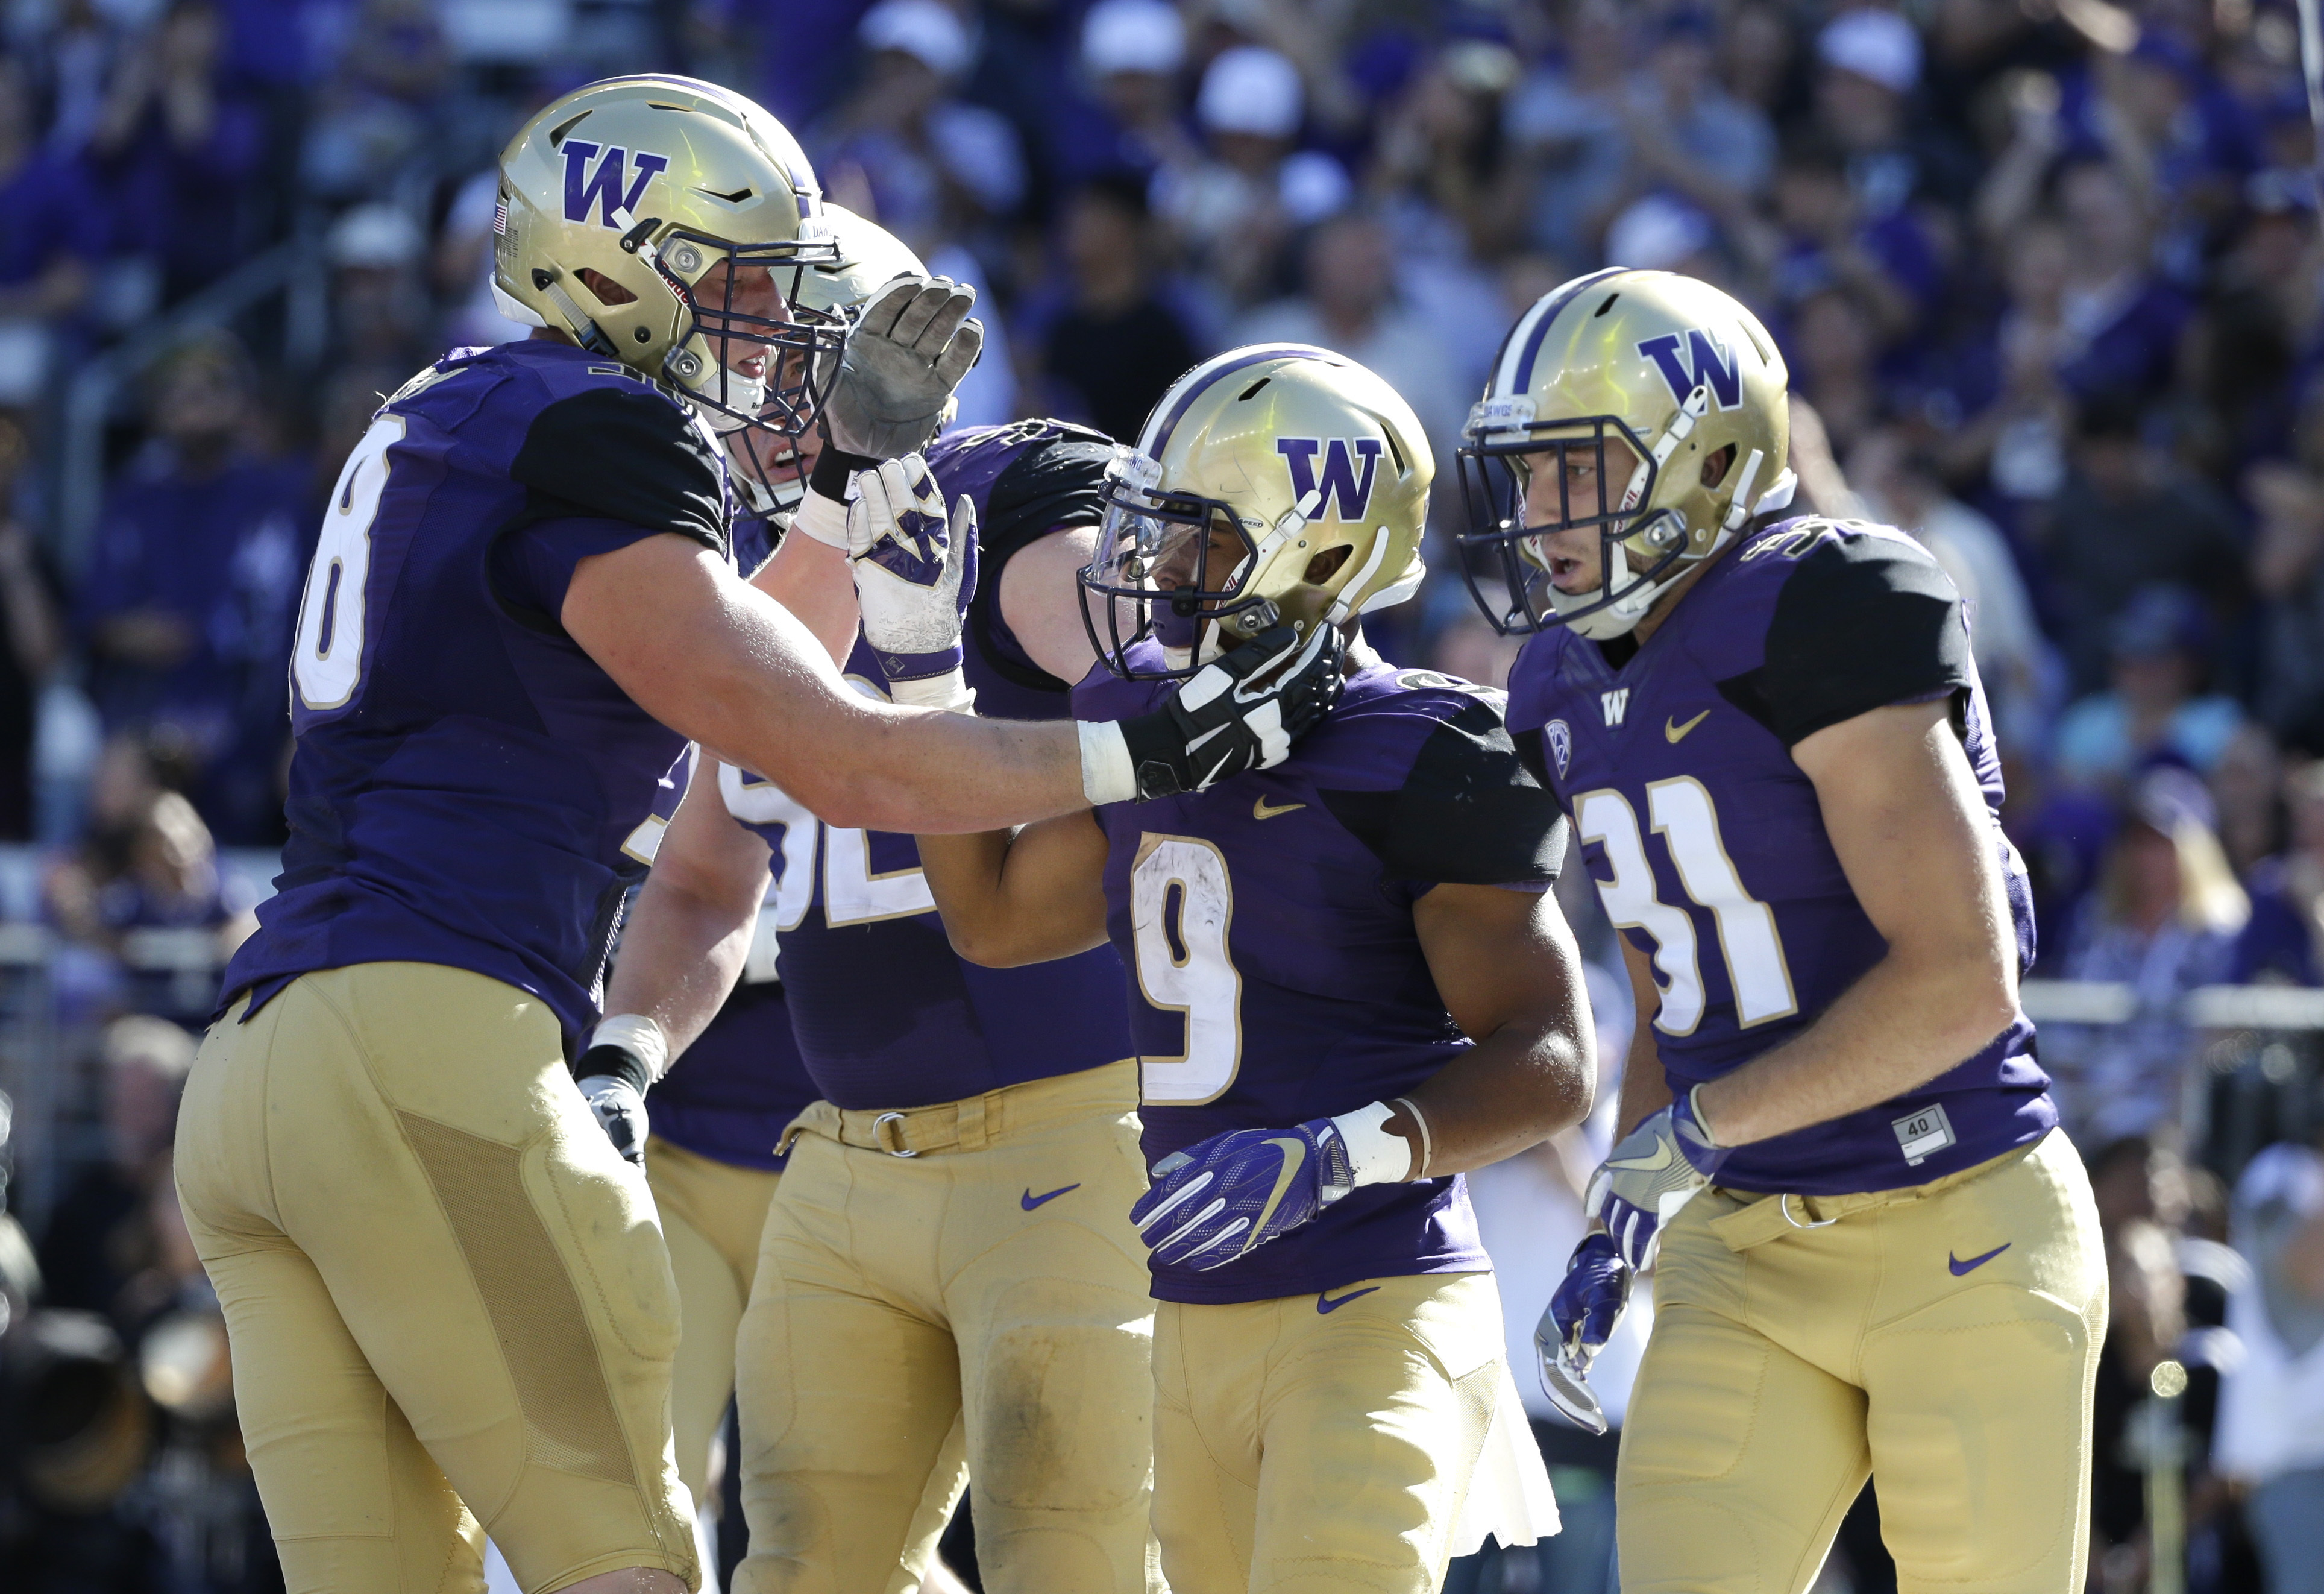 Teammates greet Washington running back Myles Gaskin (9) after Gaskin scored a touchdown against Idaho in the first half of an NCAA college football game, Saturday, Sept. 10, 2016, in Seattle. (AP Photo/Ted S. Warren)